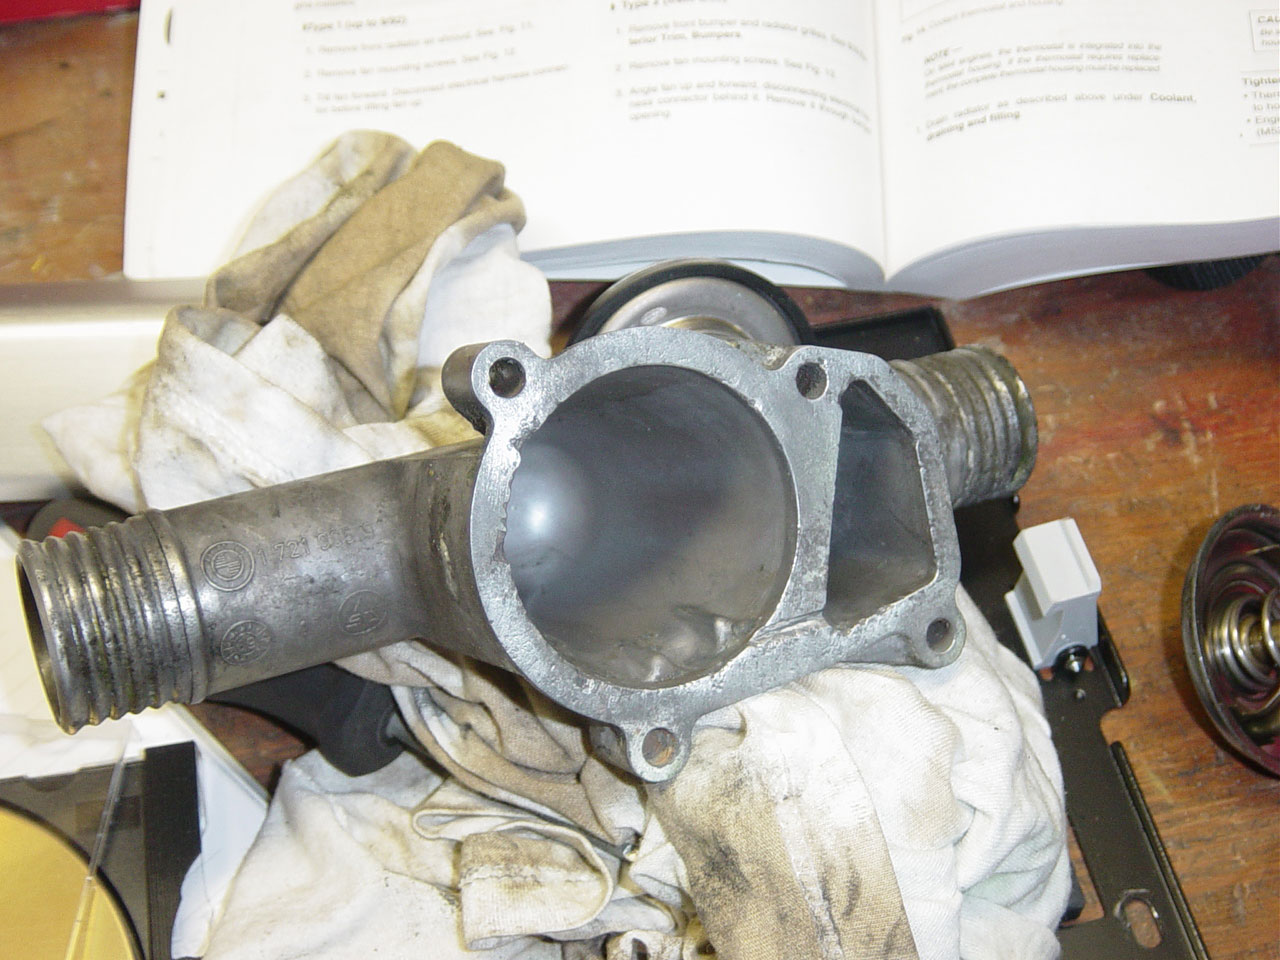 1991 Bmw 318i E30 M42 Thermostat Replacement Procedure Diy By All 95 Engine Diagram Hose Clean The Housing Surfaces So That New Seal Will Not Leak